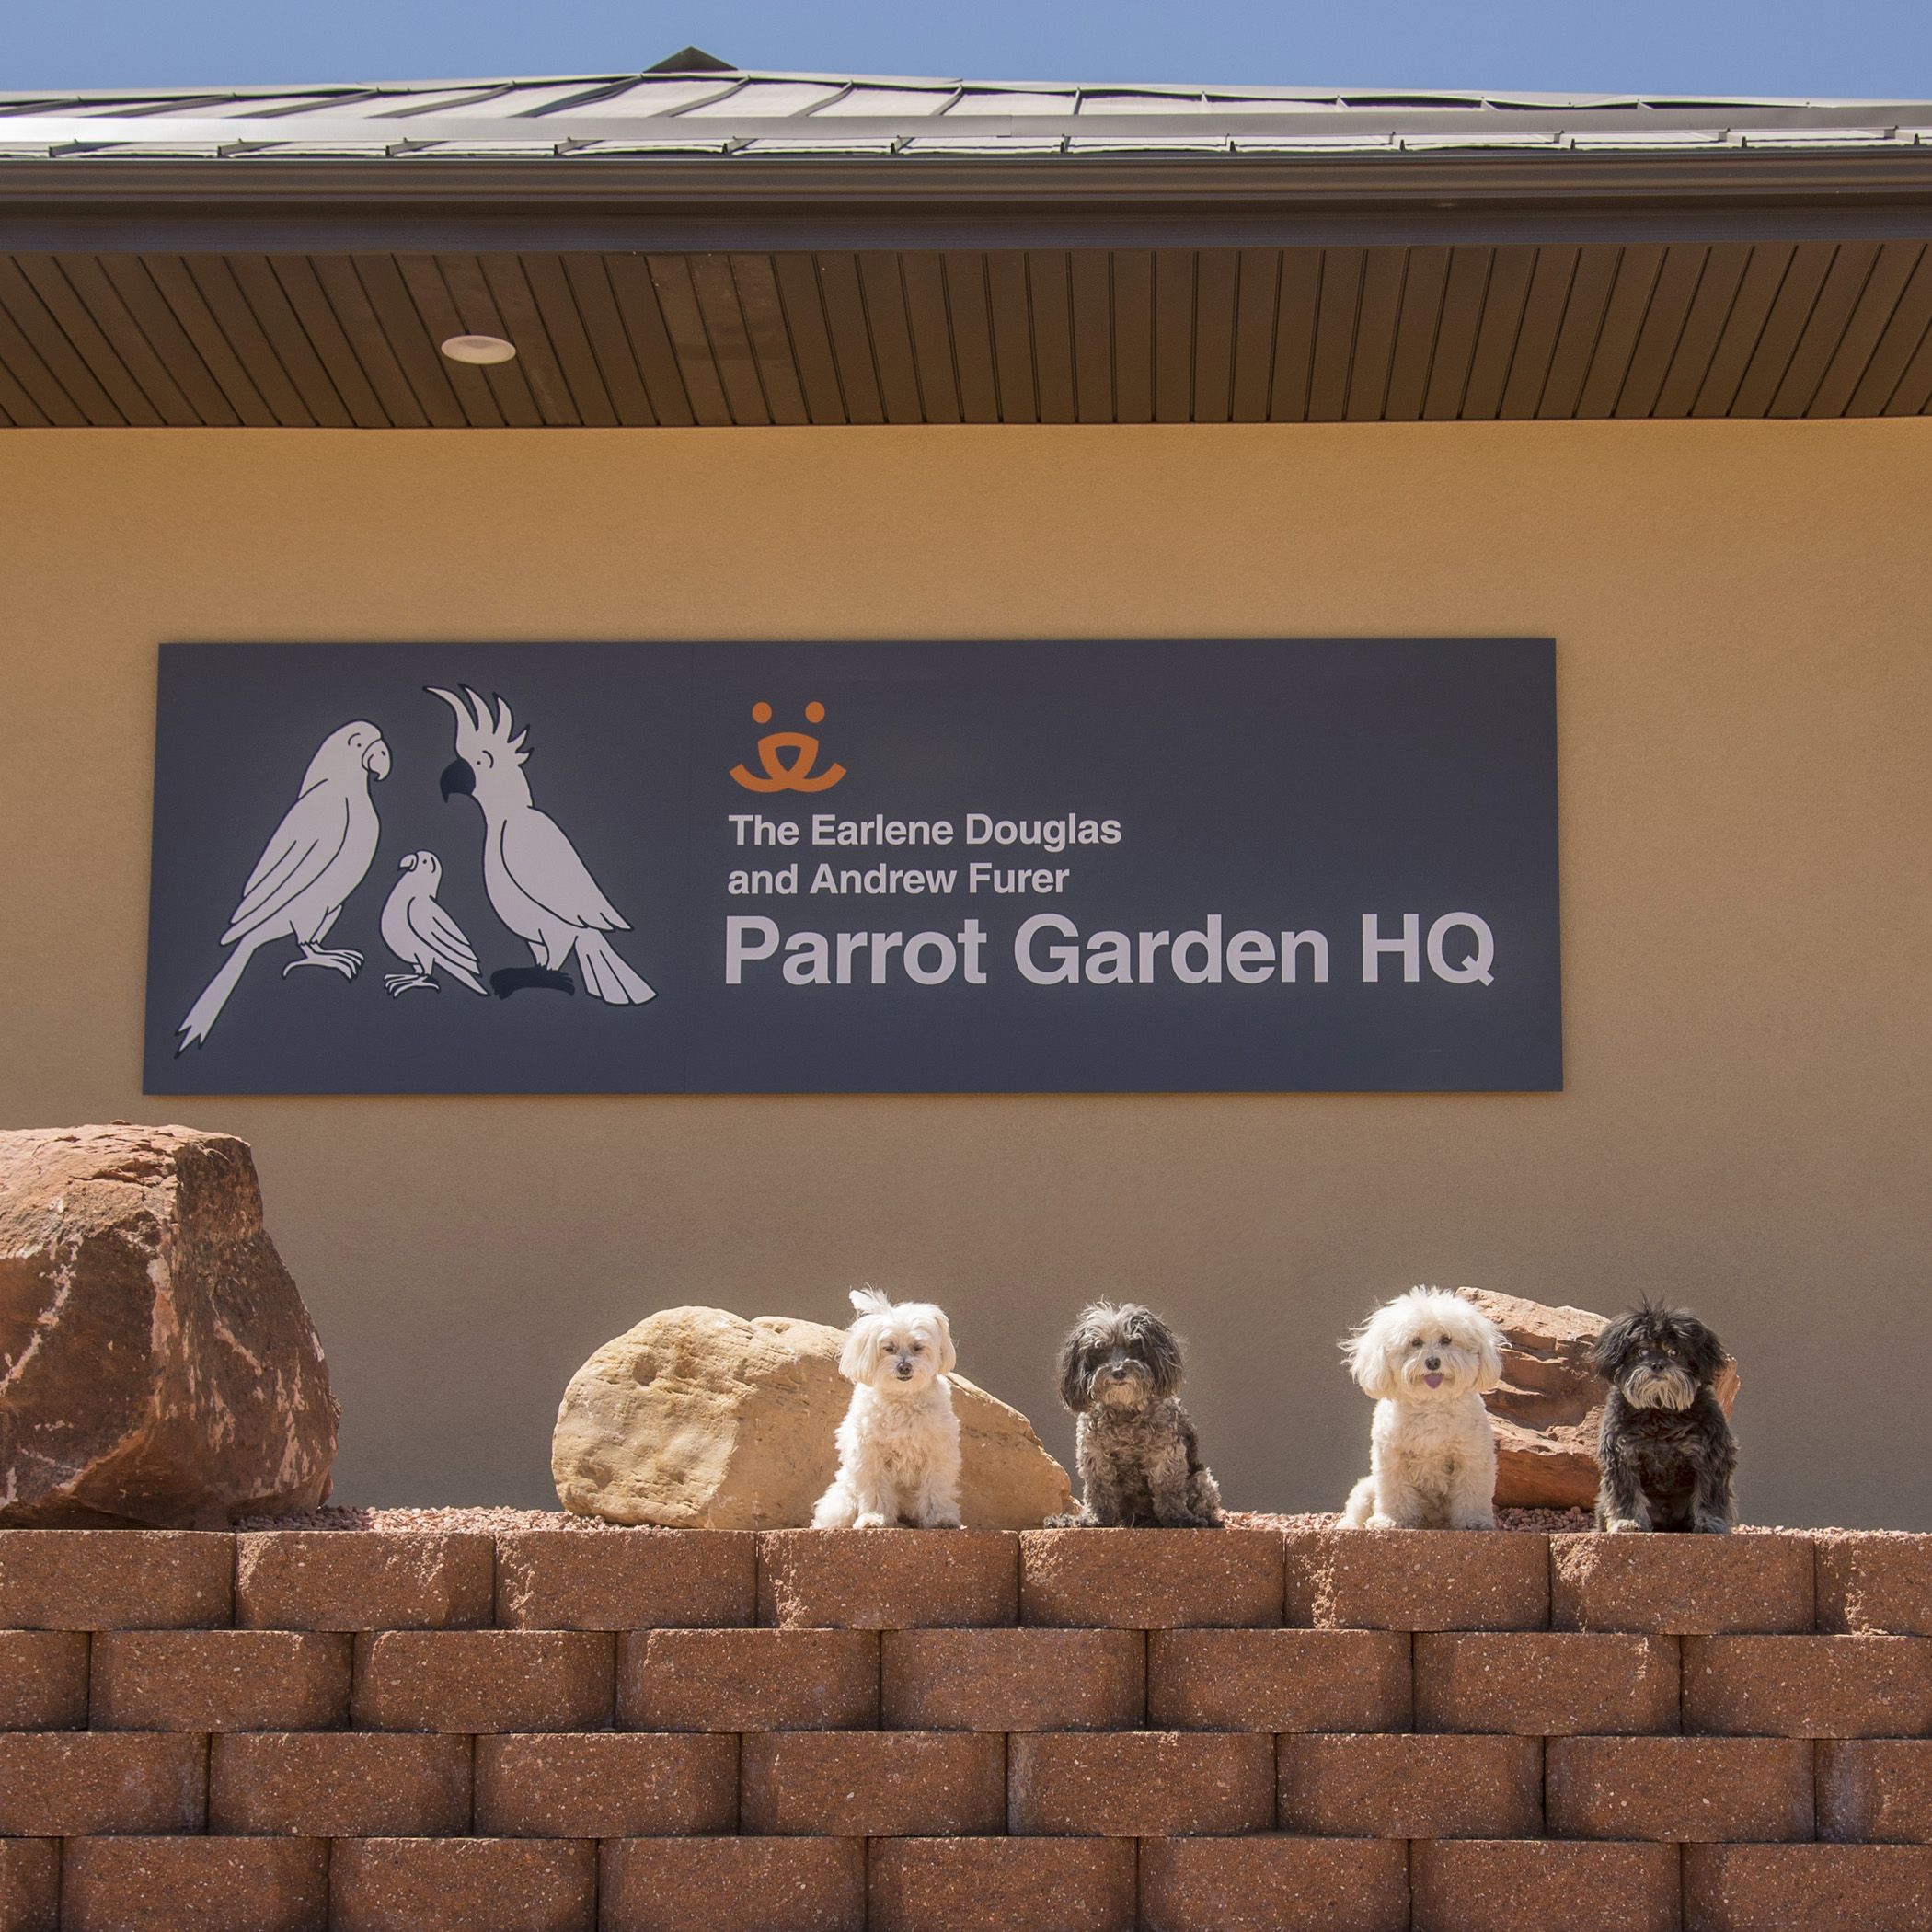 Up next for Mommy & Daddy was Parrot Garden. It reminded Mommy of their trip to Australia, being surrounded by so many beautiful Feathered Friends! Birds lose their homes just like other pets. In fact, because parrots live such a long time, they can become homeless many times over the course of their lives.